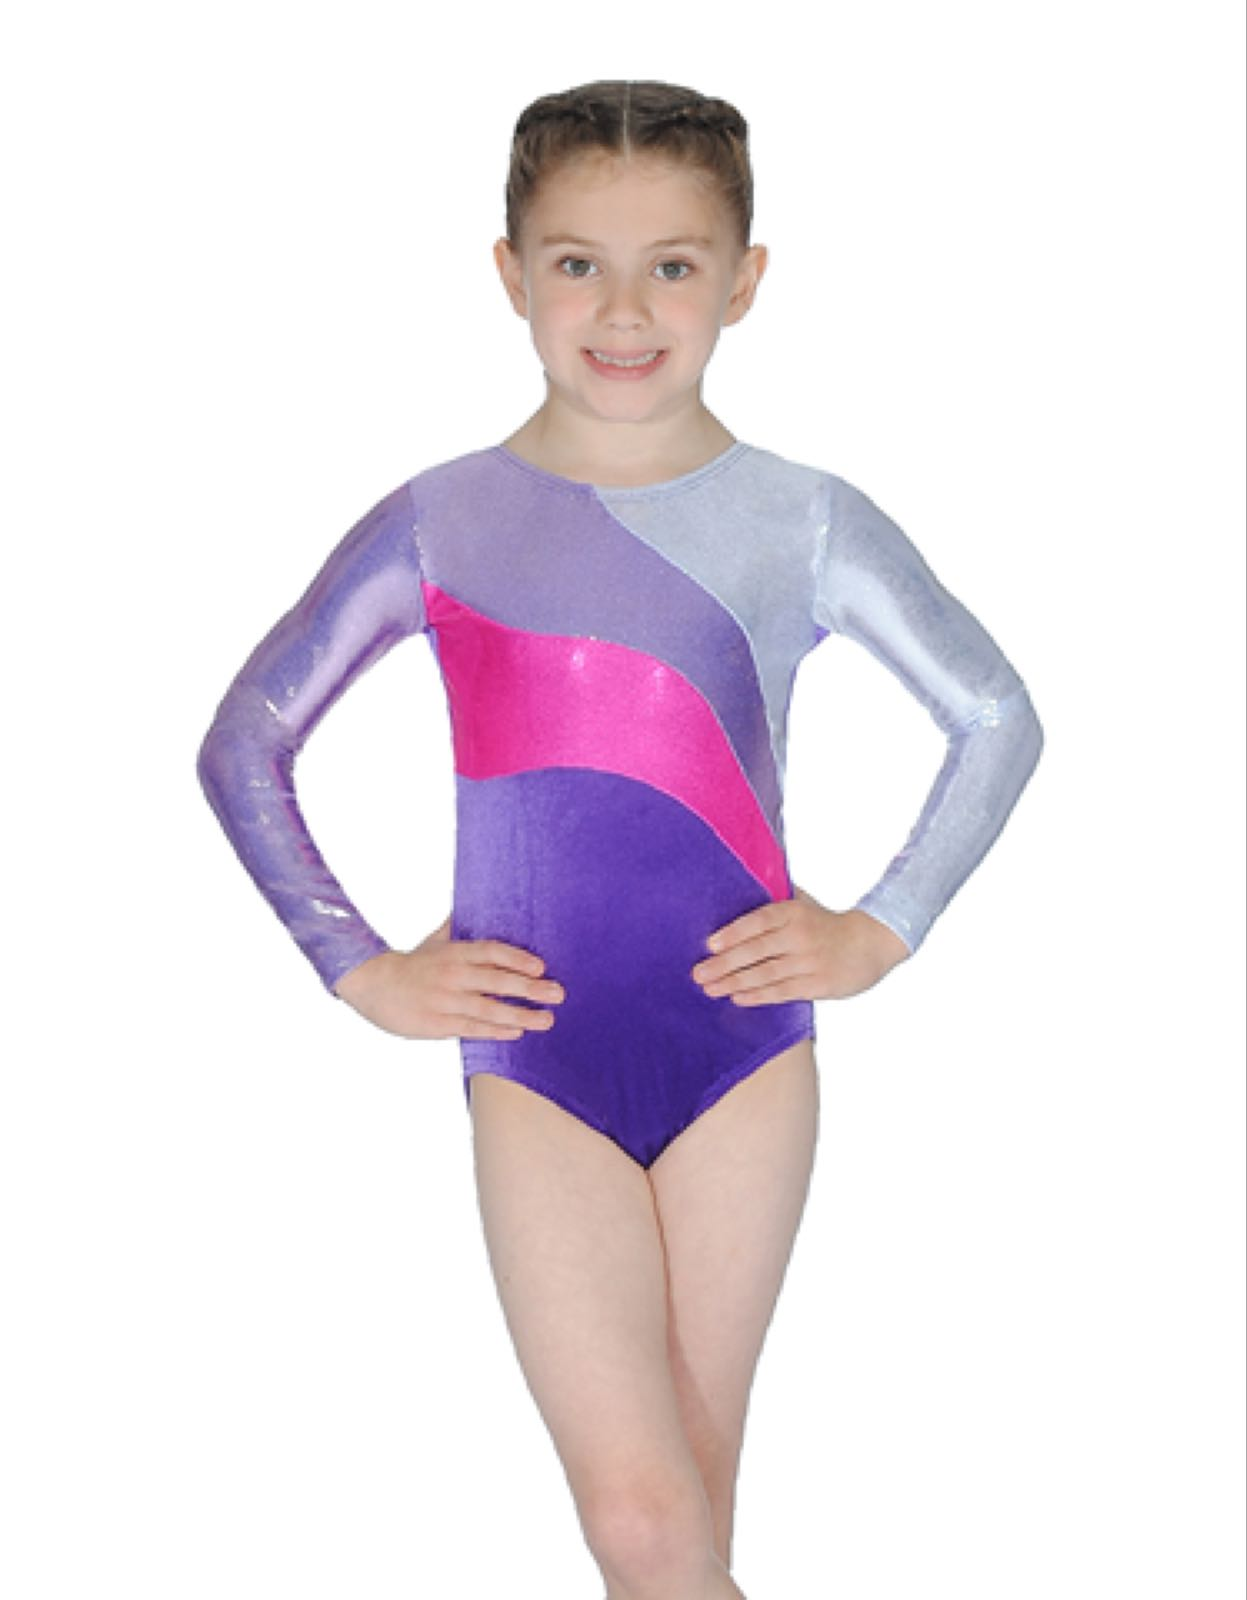 RV - Rome Long Sleeved Gymnastics Leo